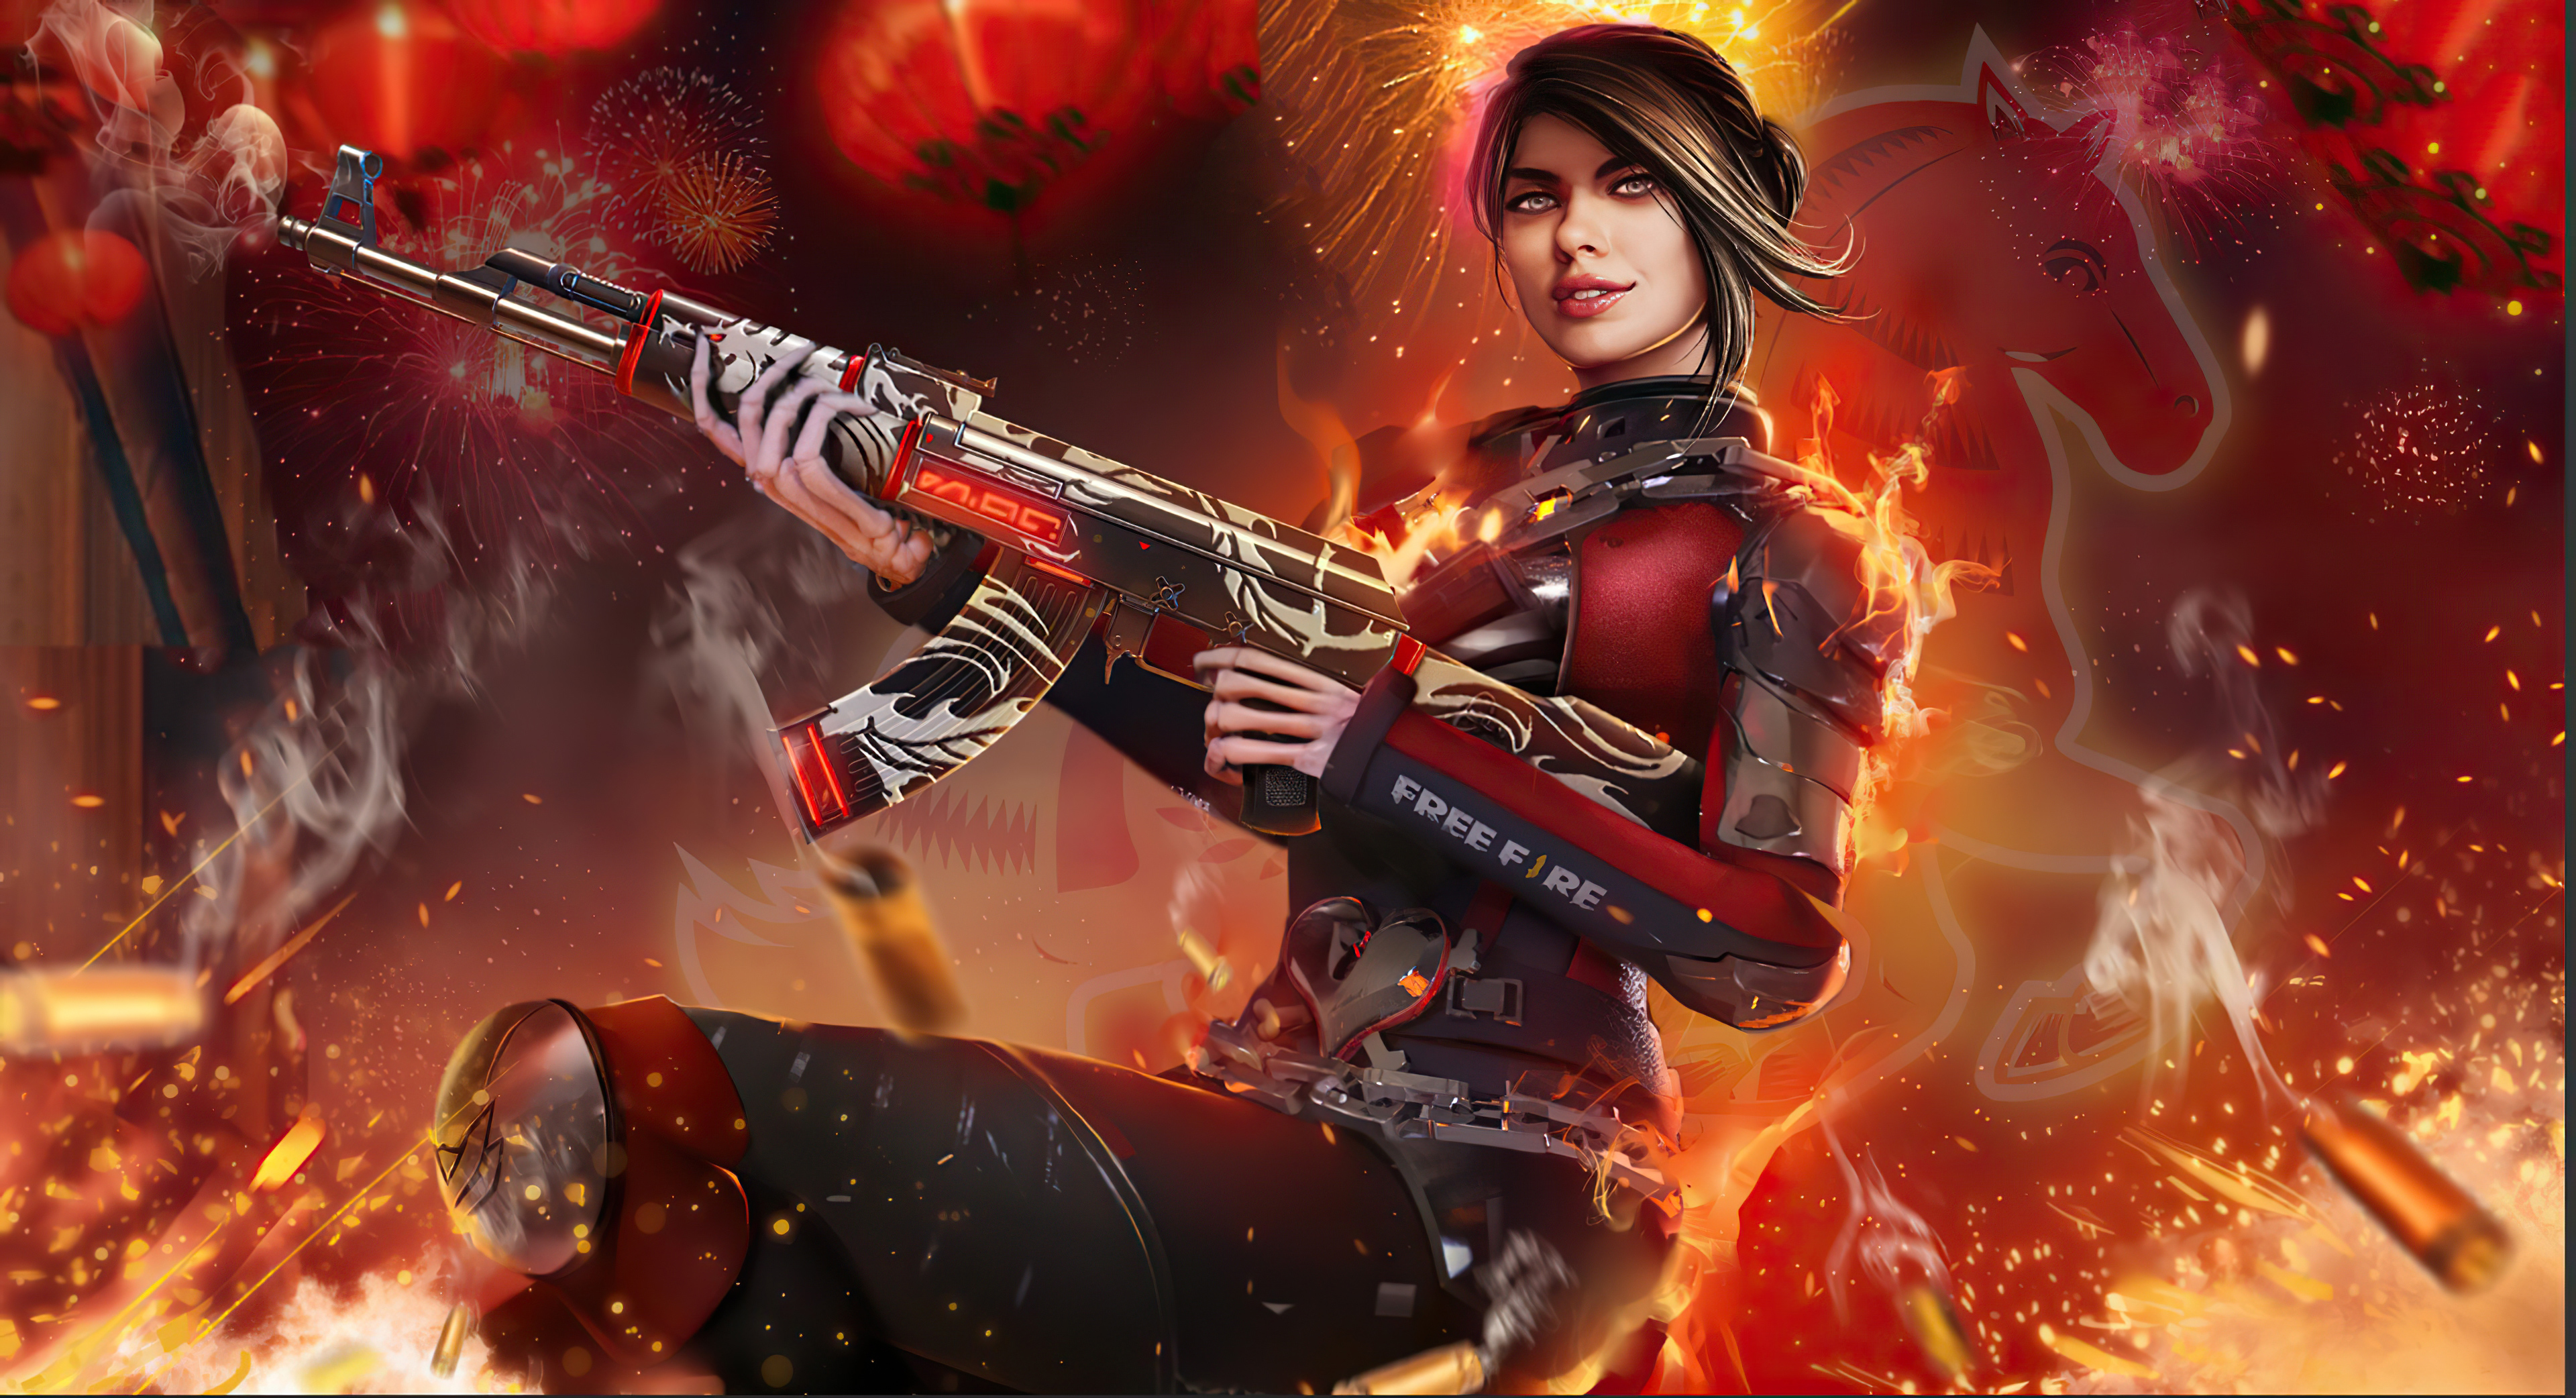 Garena Free Fire 4k Game 2020 Hd Games 4k Wallpapers Images Backgrounds Photos And Pictures